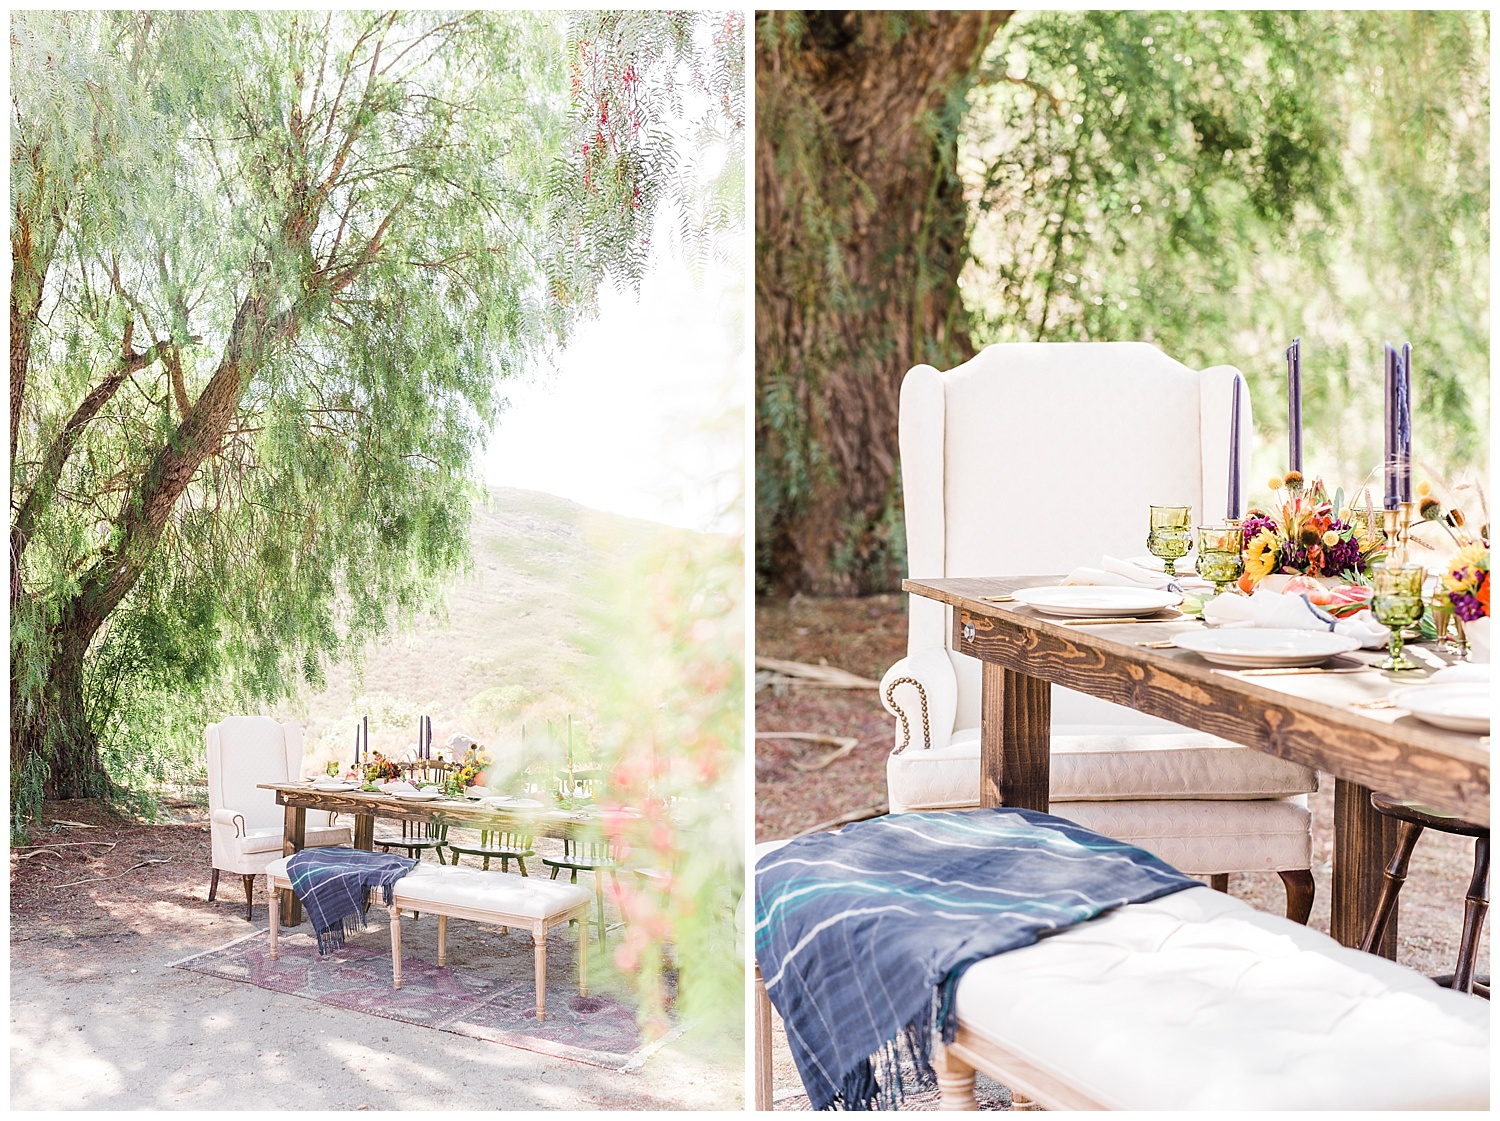 cc-vintage-rentals-back-patio-event-design-styled-shoot.jpg